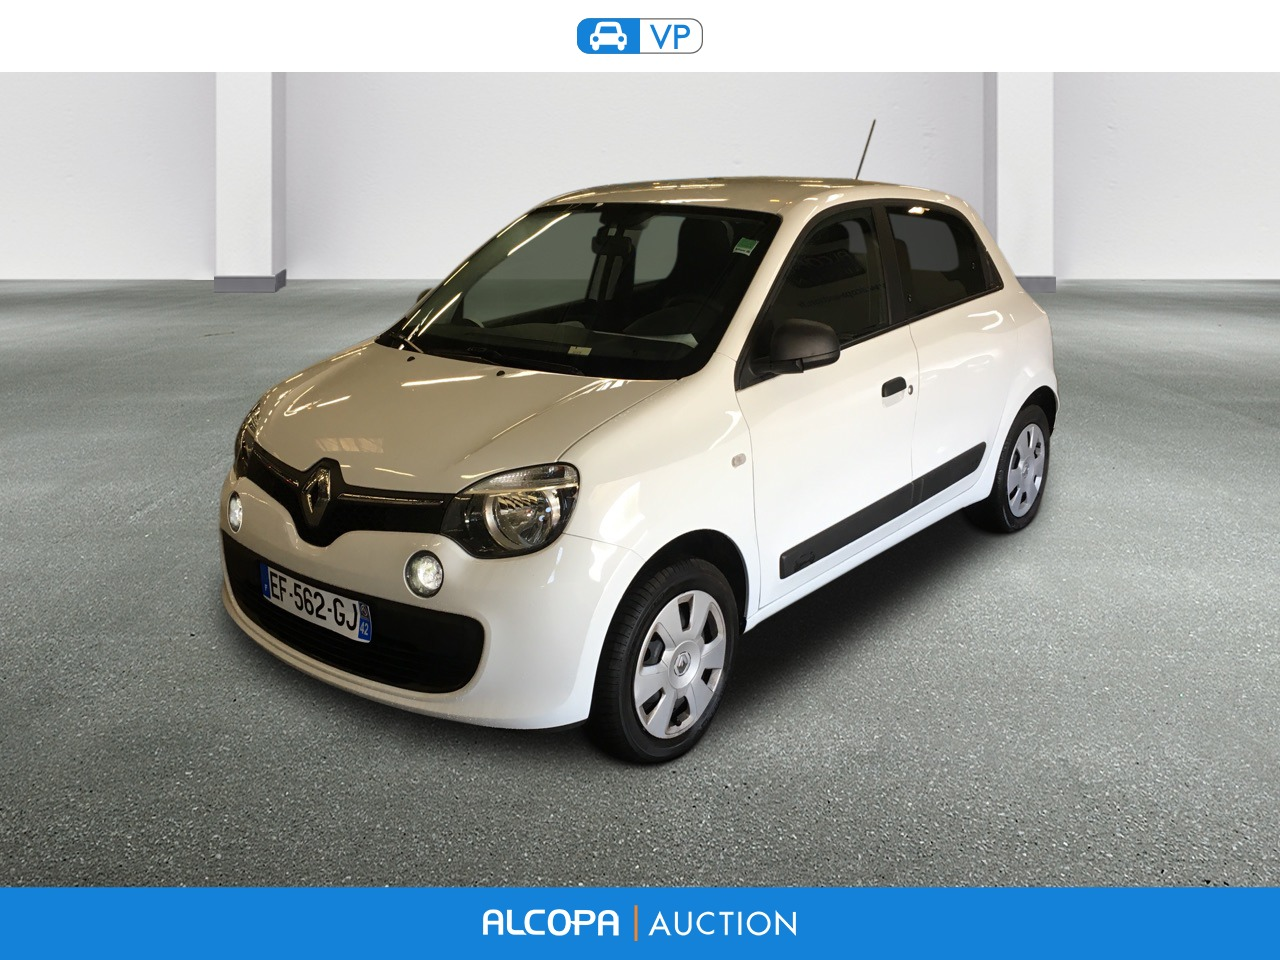 renault twingo iii 09 2014 twingo iii 1 0 sce 70 bc life alcopa auction. Black Bedroom Furniture Sets. Home Design Ideas